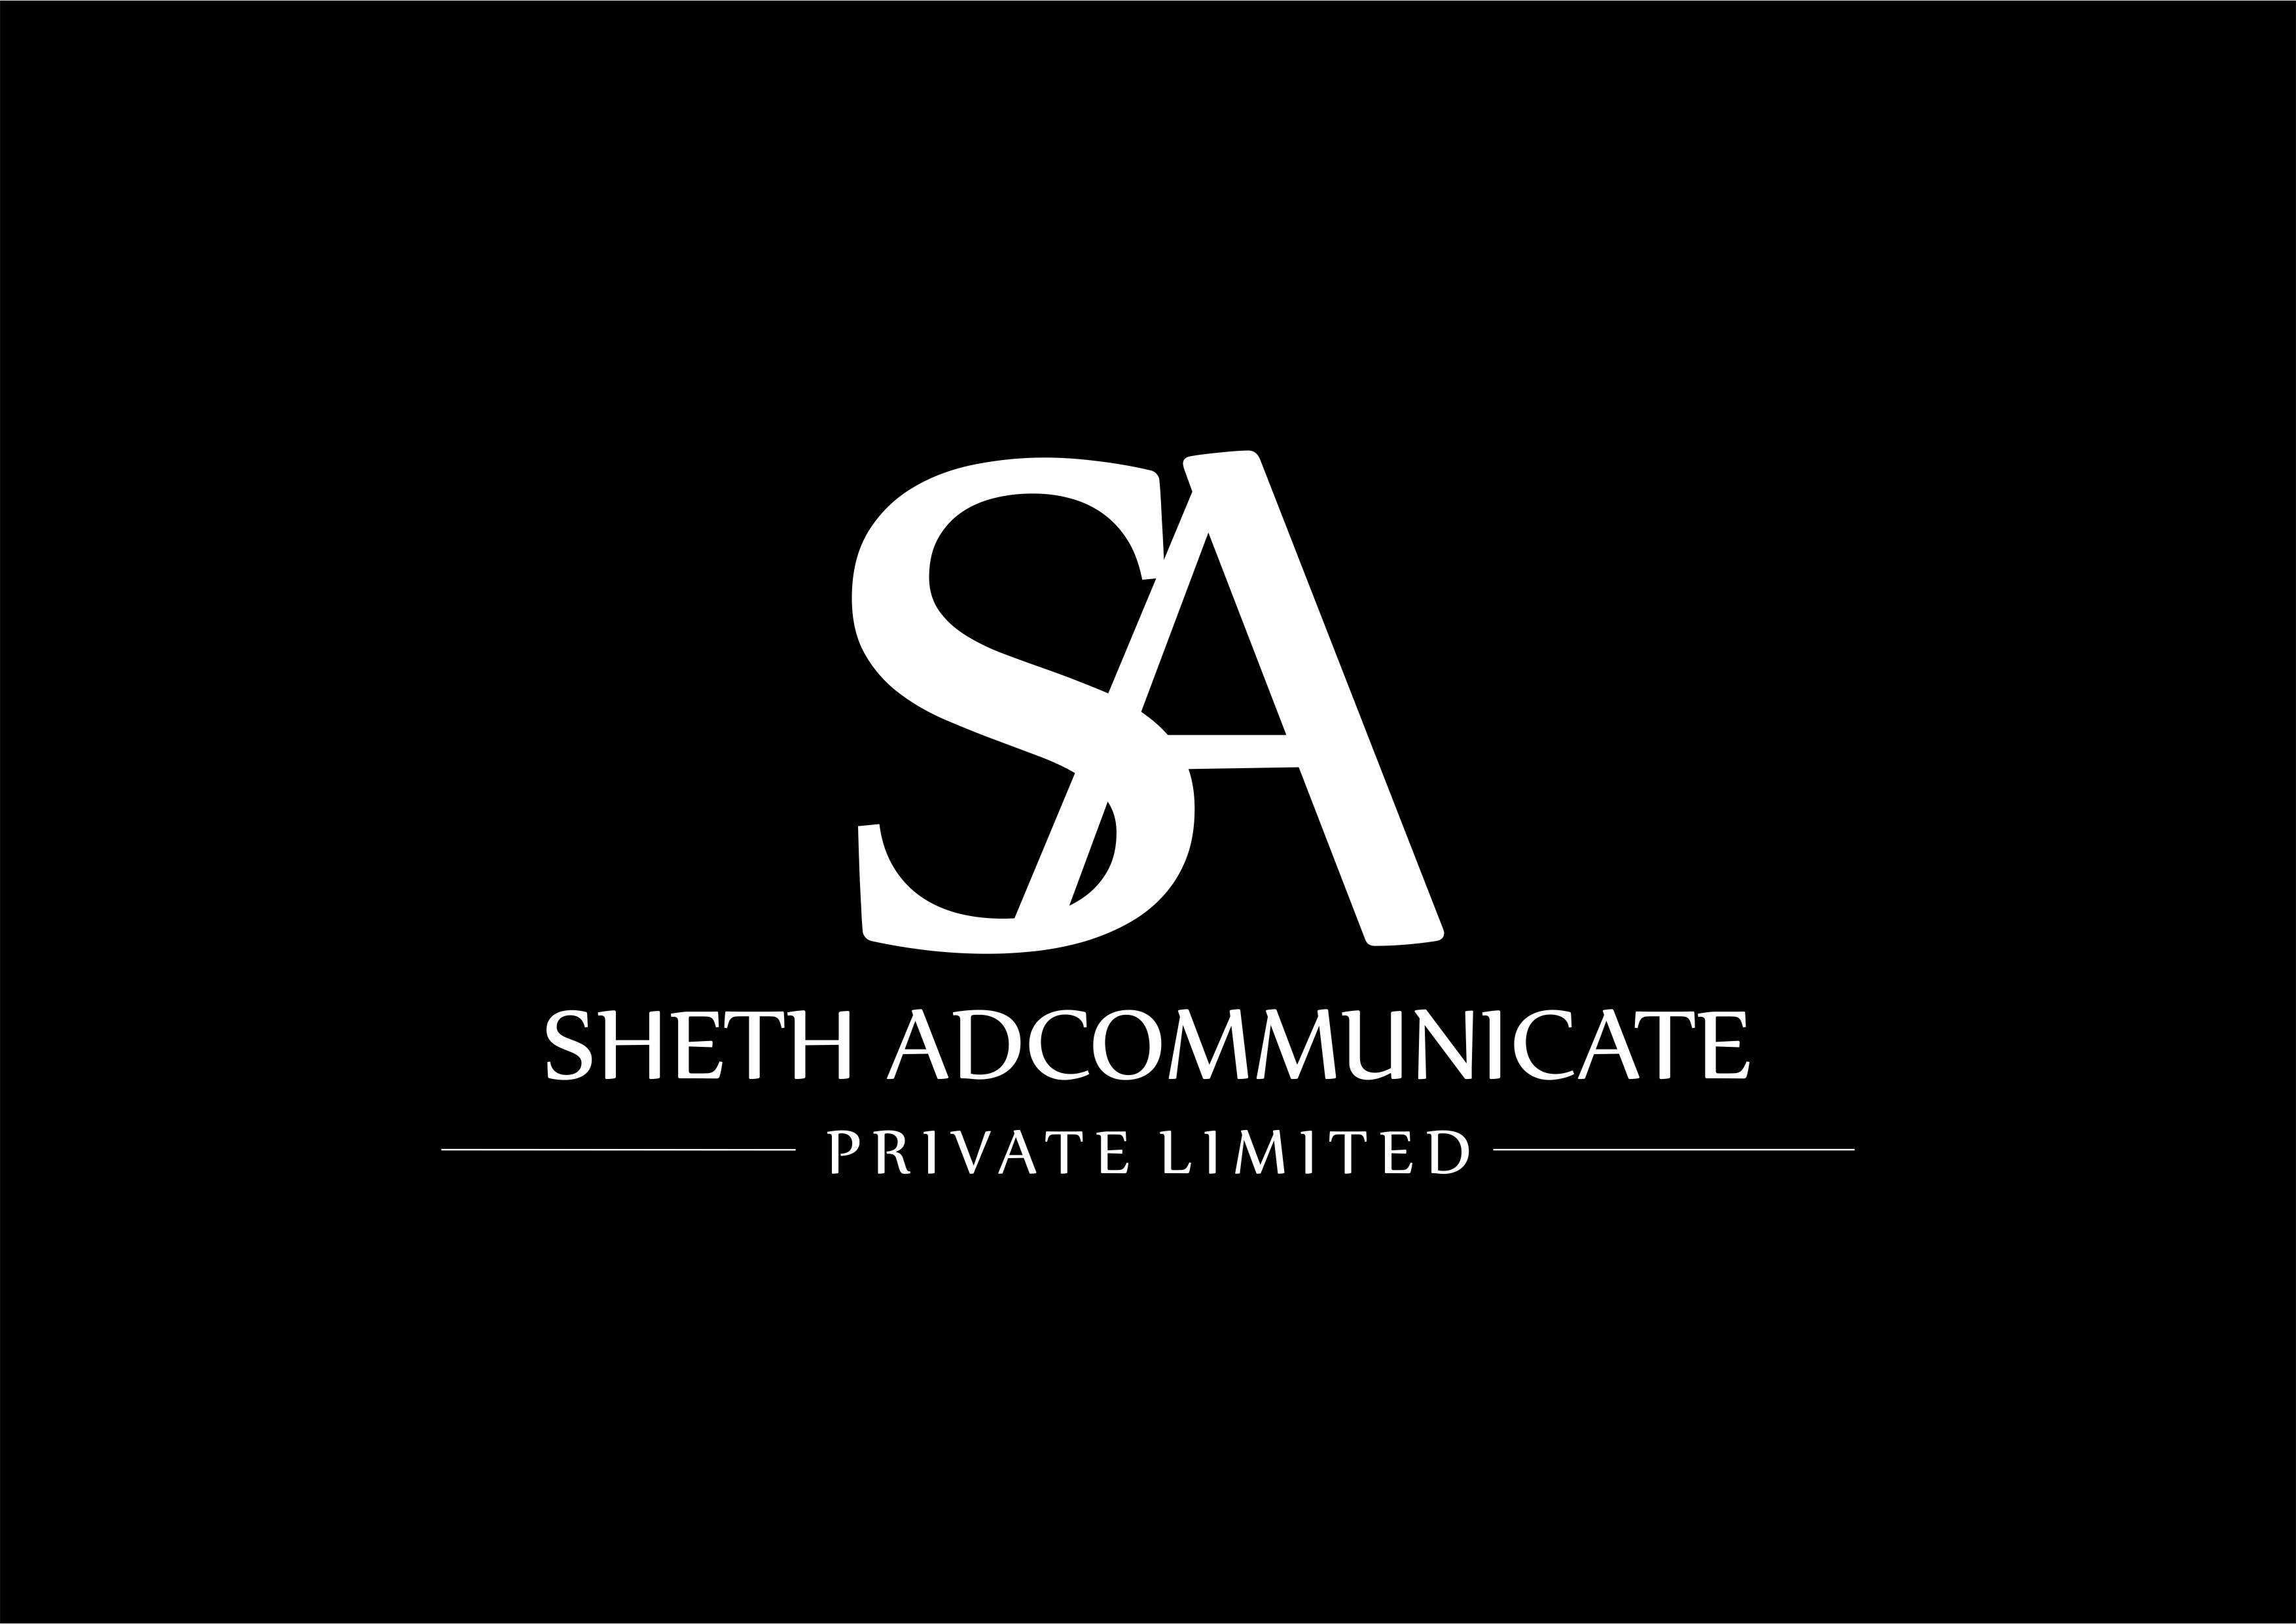 Sheth Adcommunicate Pvt Ltd(Craftee Ads) Logo